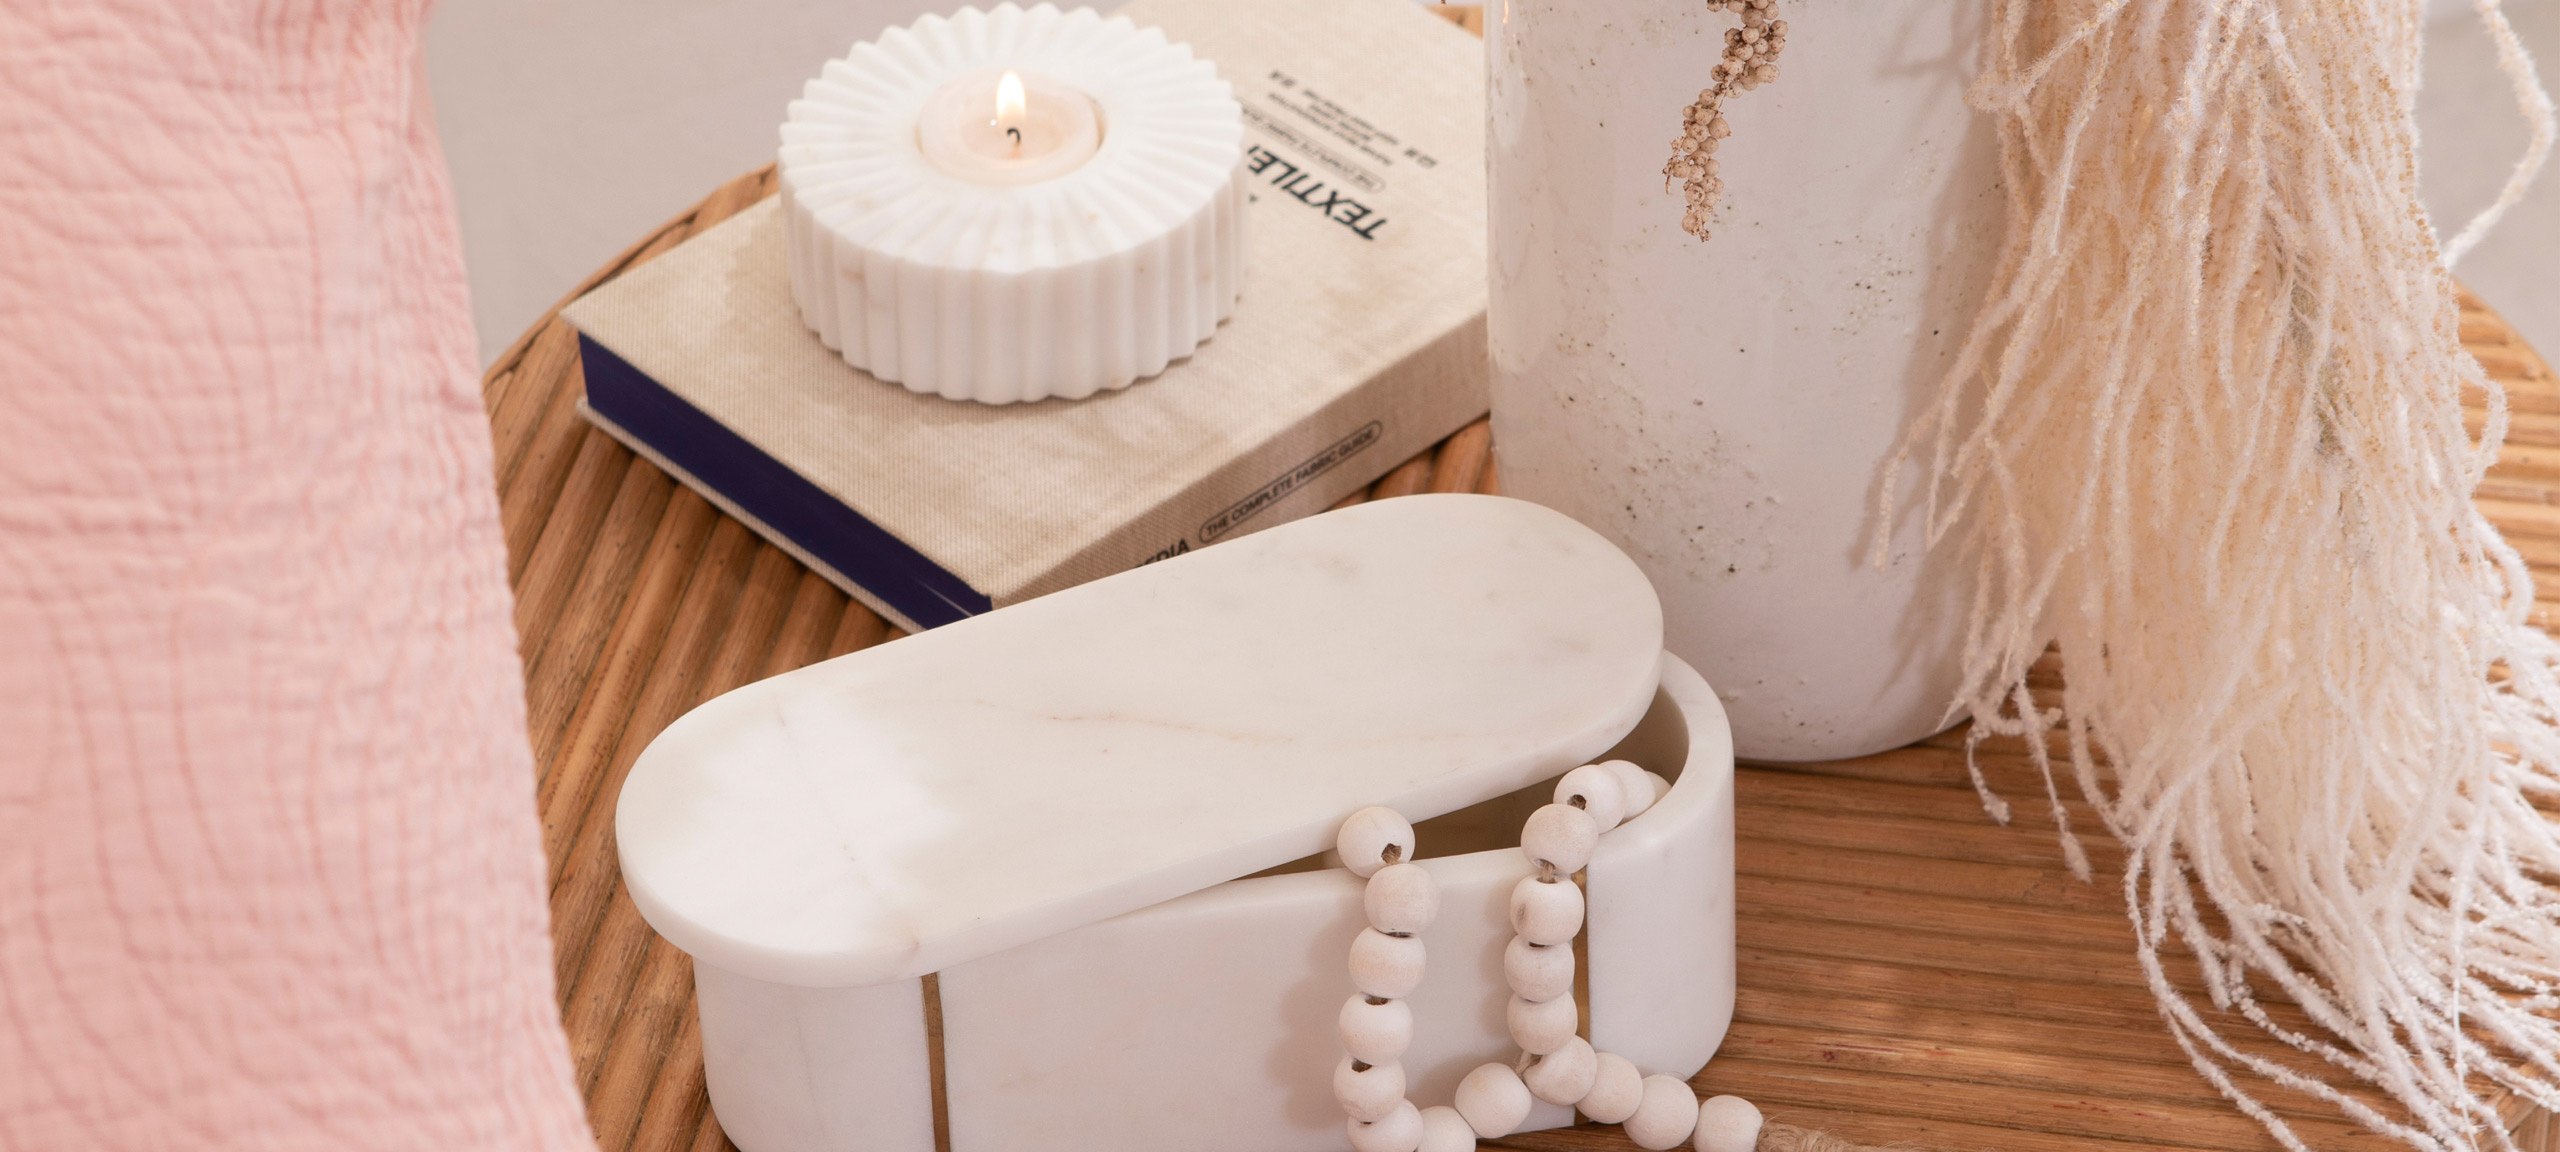 Marble decor styling - tealight and box